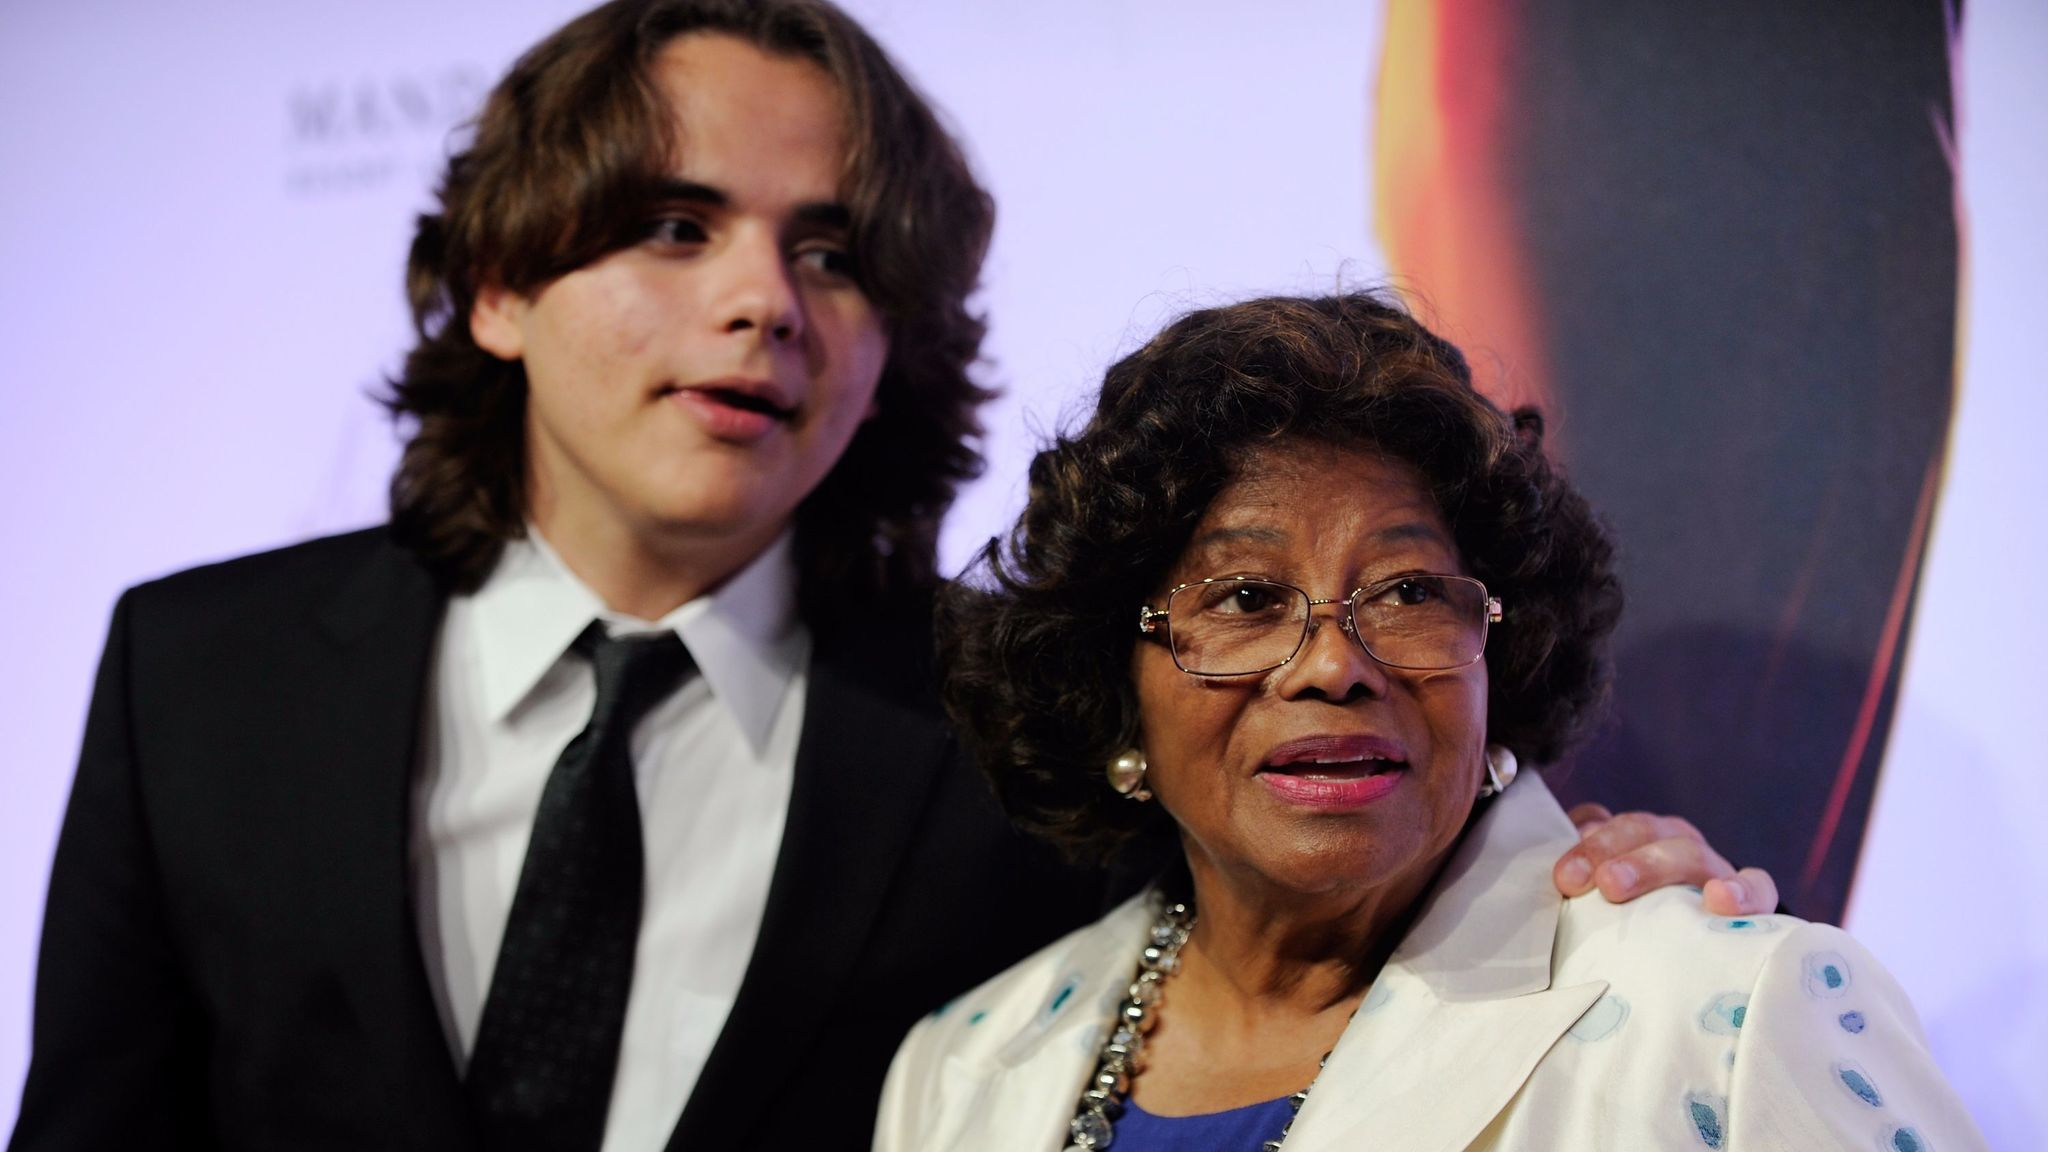 Prince Jackson, left, and Katherine Jackson arrive at the world premiere of